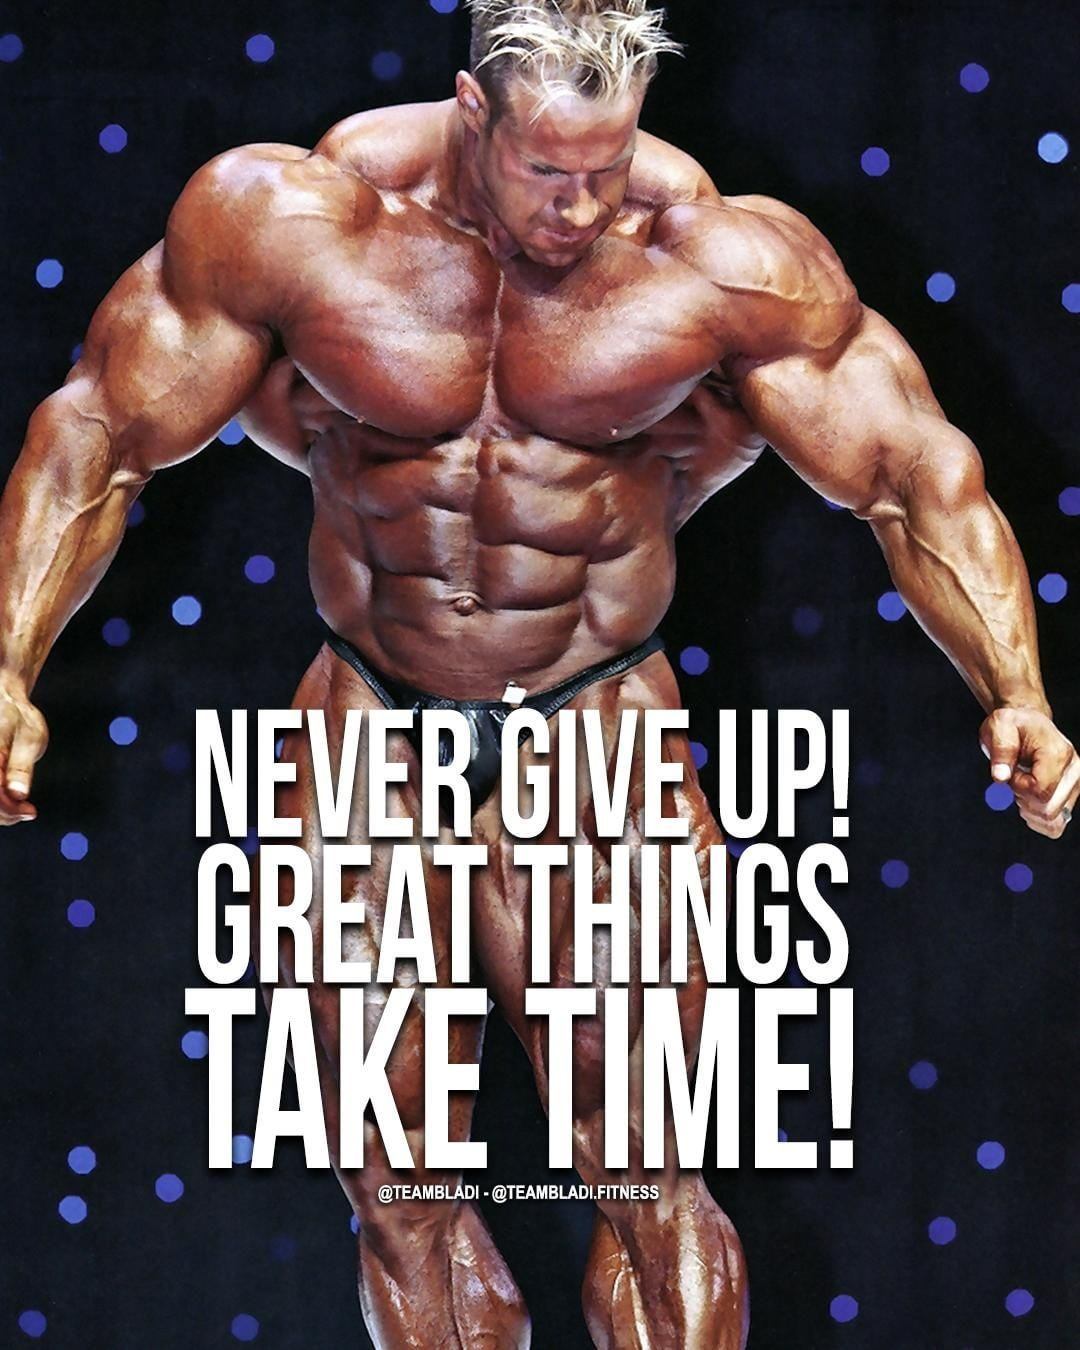 Never Give Up Great Things Take Time Best Example 4x Mr Olympia Jay Cutler B Bodybuilding Motivation Quotes Mr Olympia Bodybuilding Bodybuilding Motivation